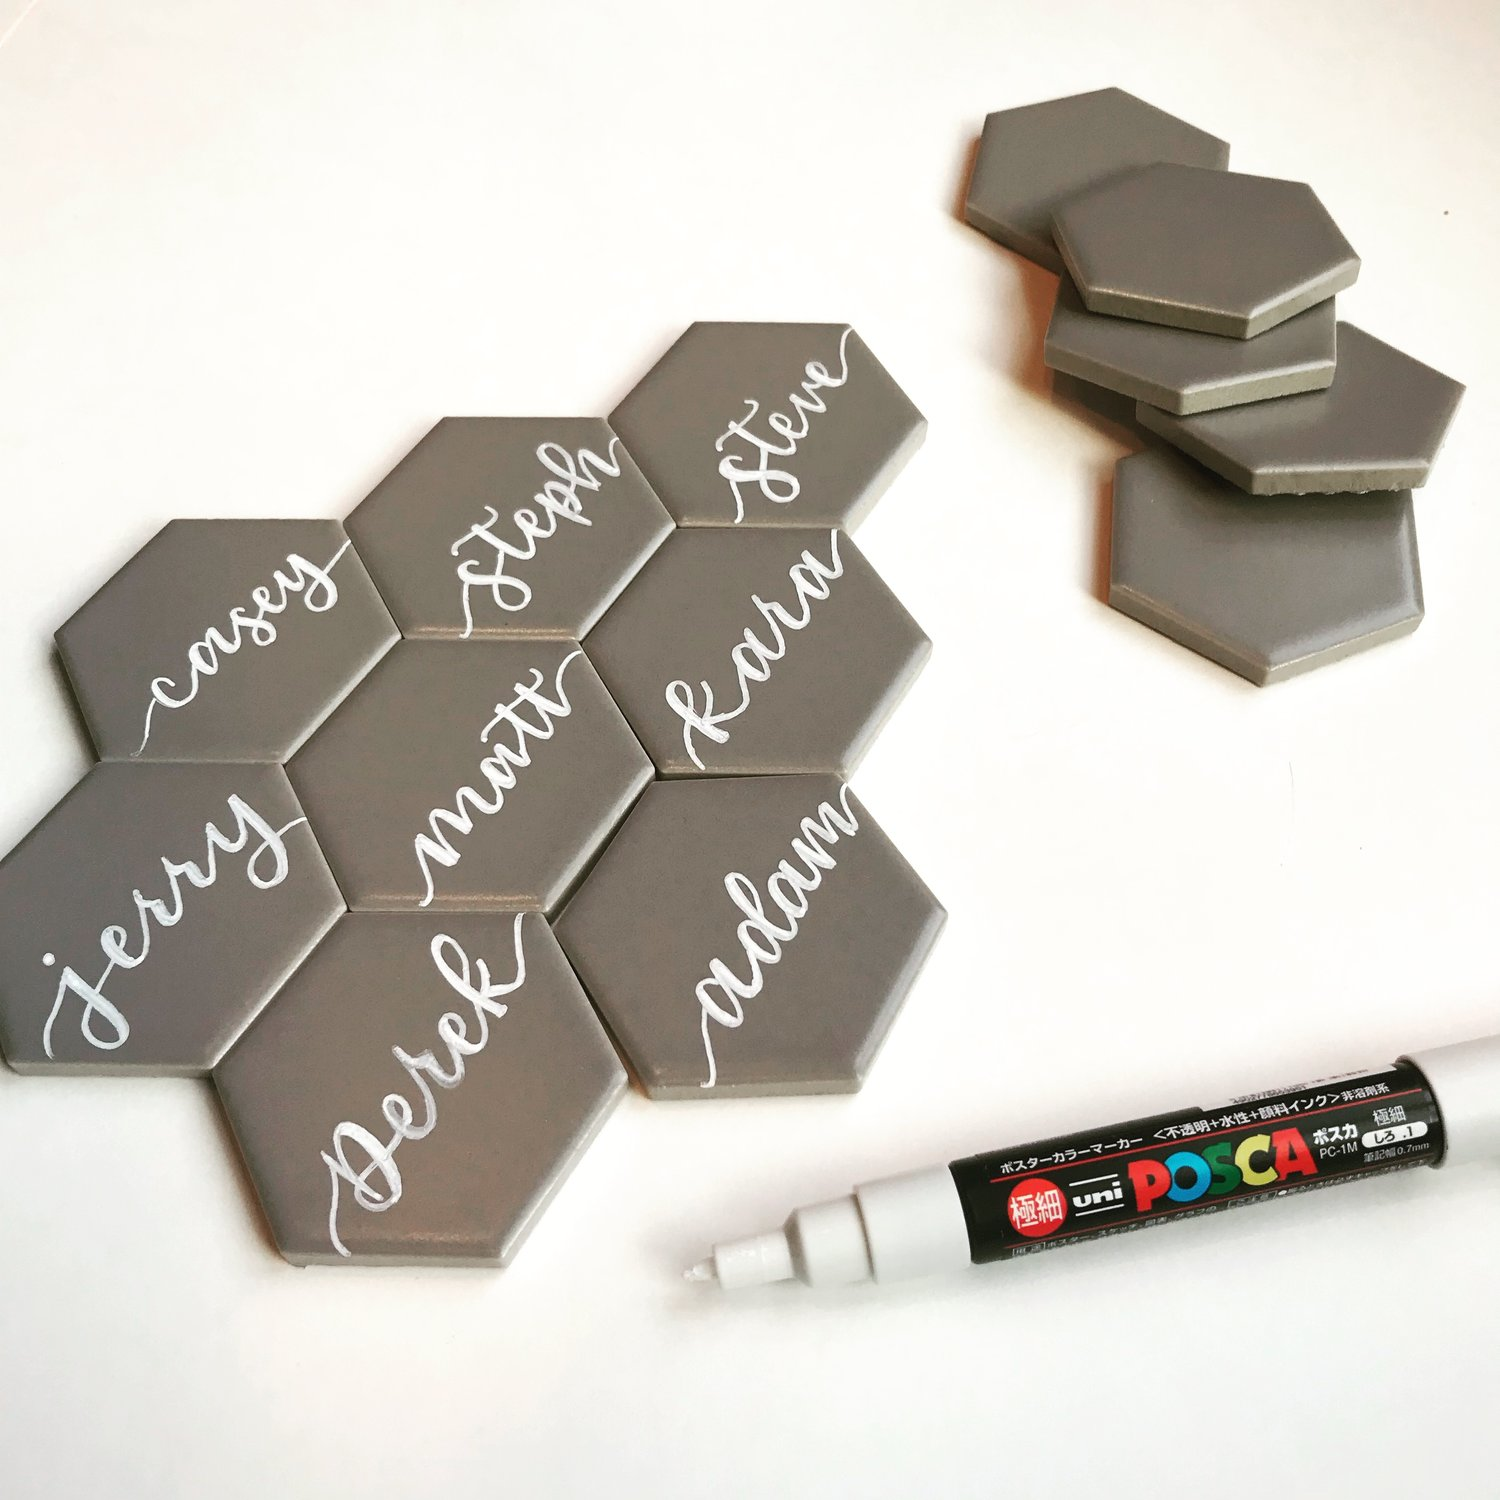 Personalized Calligraphy Tiles.jpeg